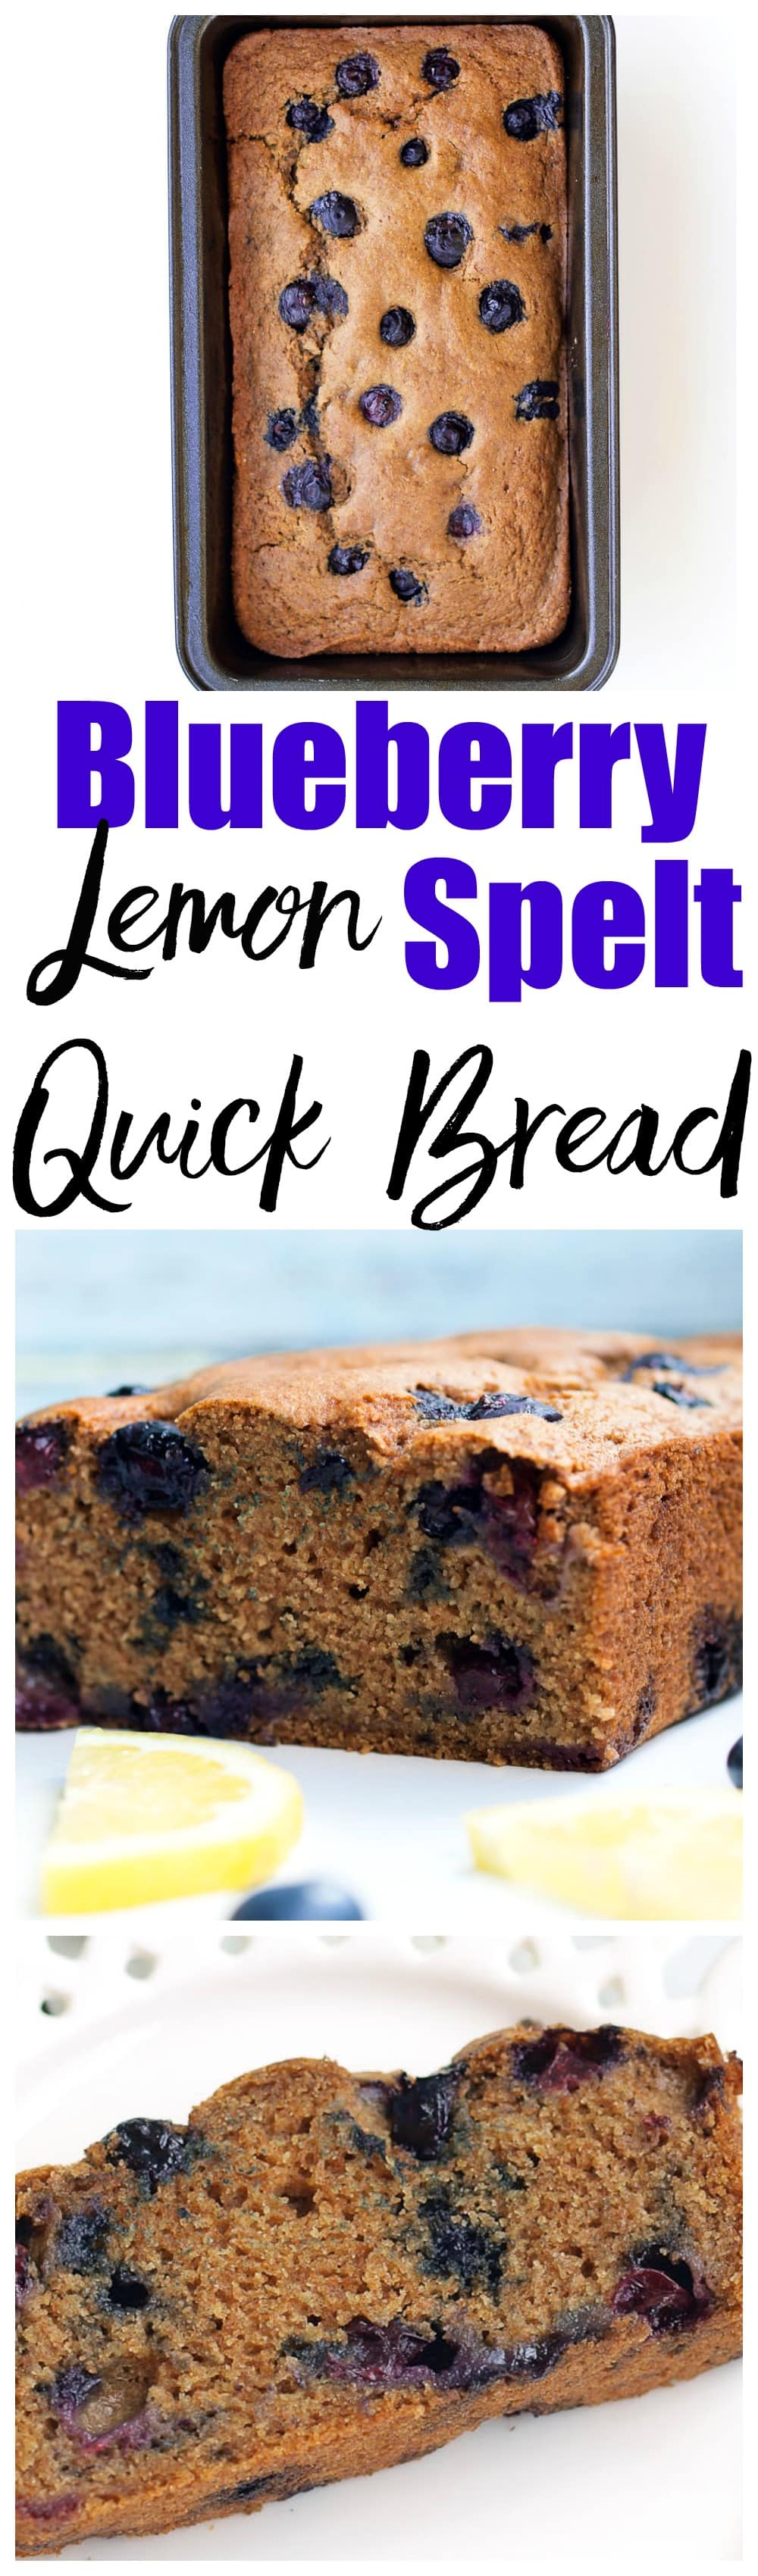 This Vegan Blueberry Lemon Spelt Quick Bread recipe is a healthy quick bread recipe made with no refined sugar and bursting with fresh blueberries! My kids loved this and devoured it like it was cake!!